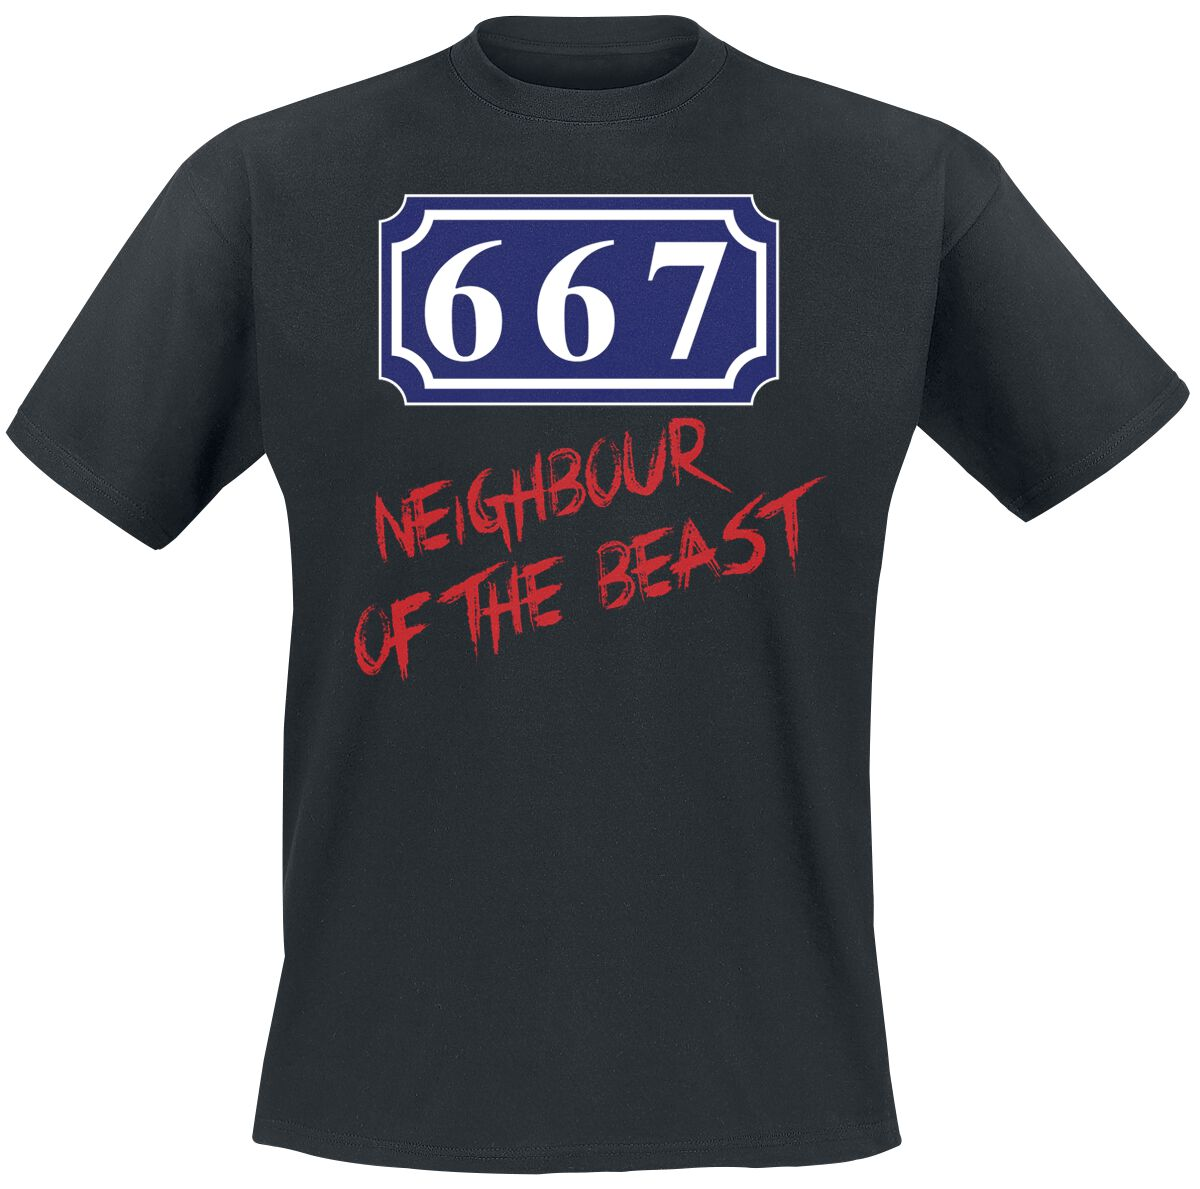 Image of   667 Neighbour Of The Beast T-Shirt sort